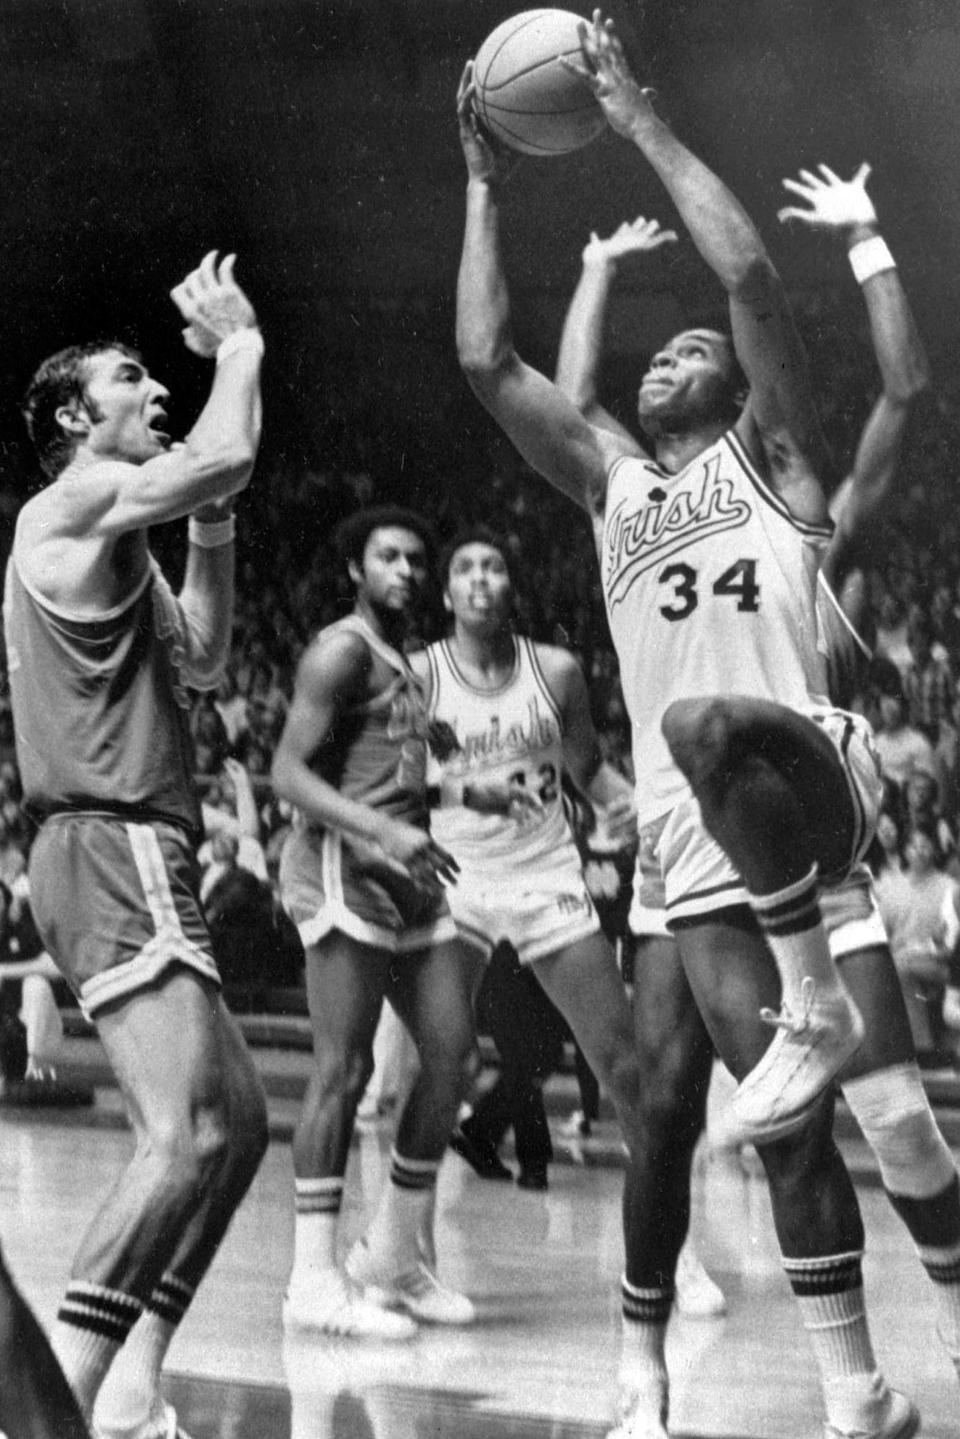 FILE - In this Jan. 23, 1971, file photo, Notre Dame's Austin Carr goes to the basket as UCLA's Steve Patterson, left, defends, during a college basketball game in South Bend, Ind. Carr had 46 points in an 89-82 victory. Carr played for Notre Dame in an era when prolific scorers dominated college basketball. It wasn't until Carr scored a still-standing NCAA Tournament-record 61 points against Ohio in the first round in 1970 that, in his mind, he started to separate himself. (AP Photo/Richard Horowitz, File)